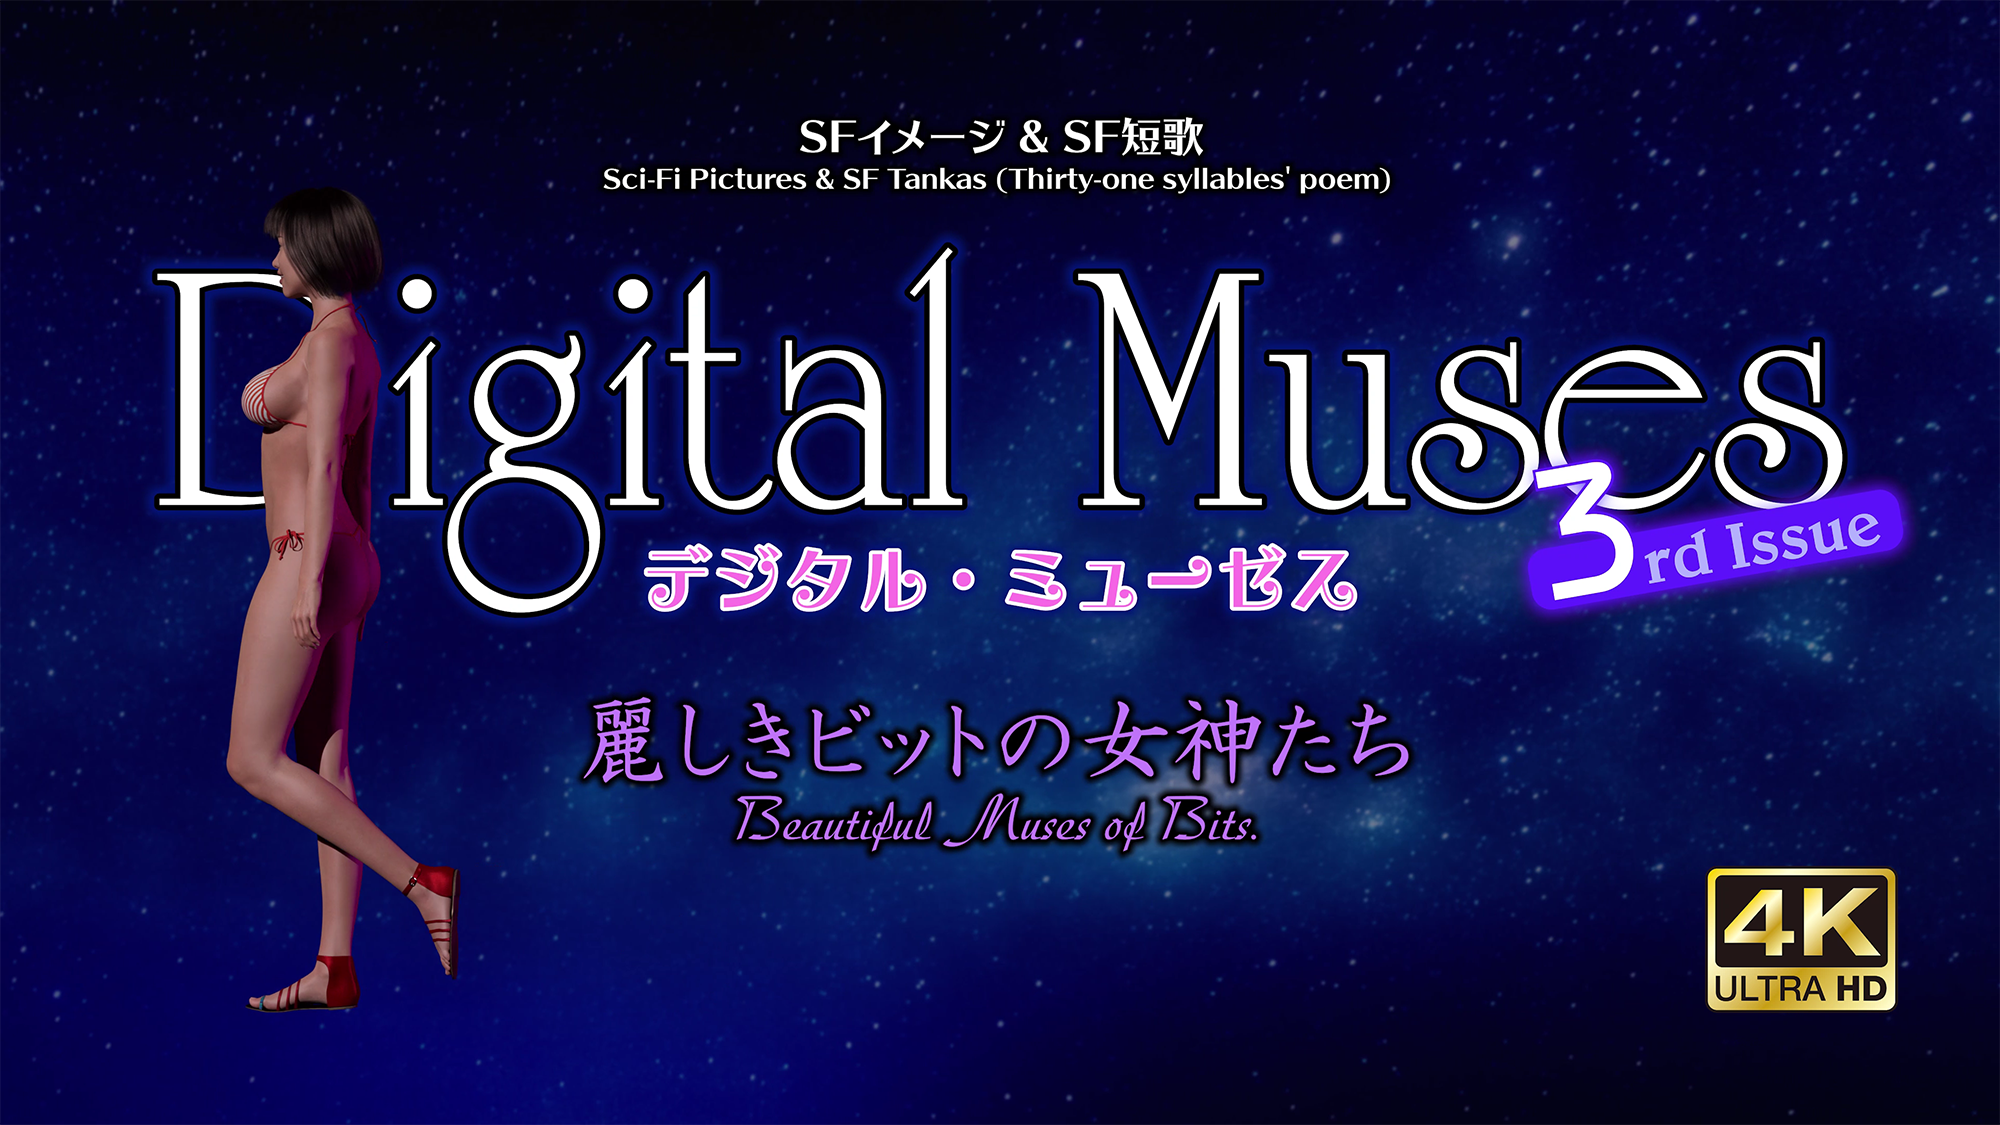 Digital Muses 3rd Issueは鋭意制作中